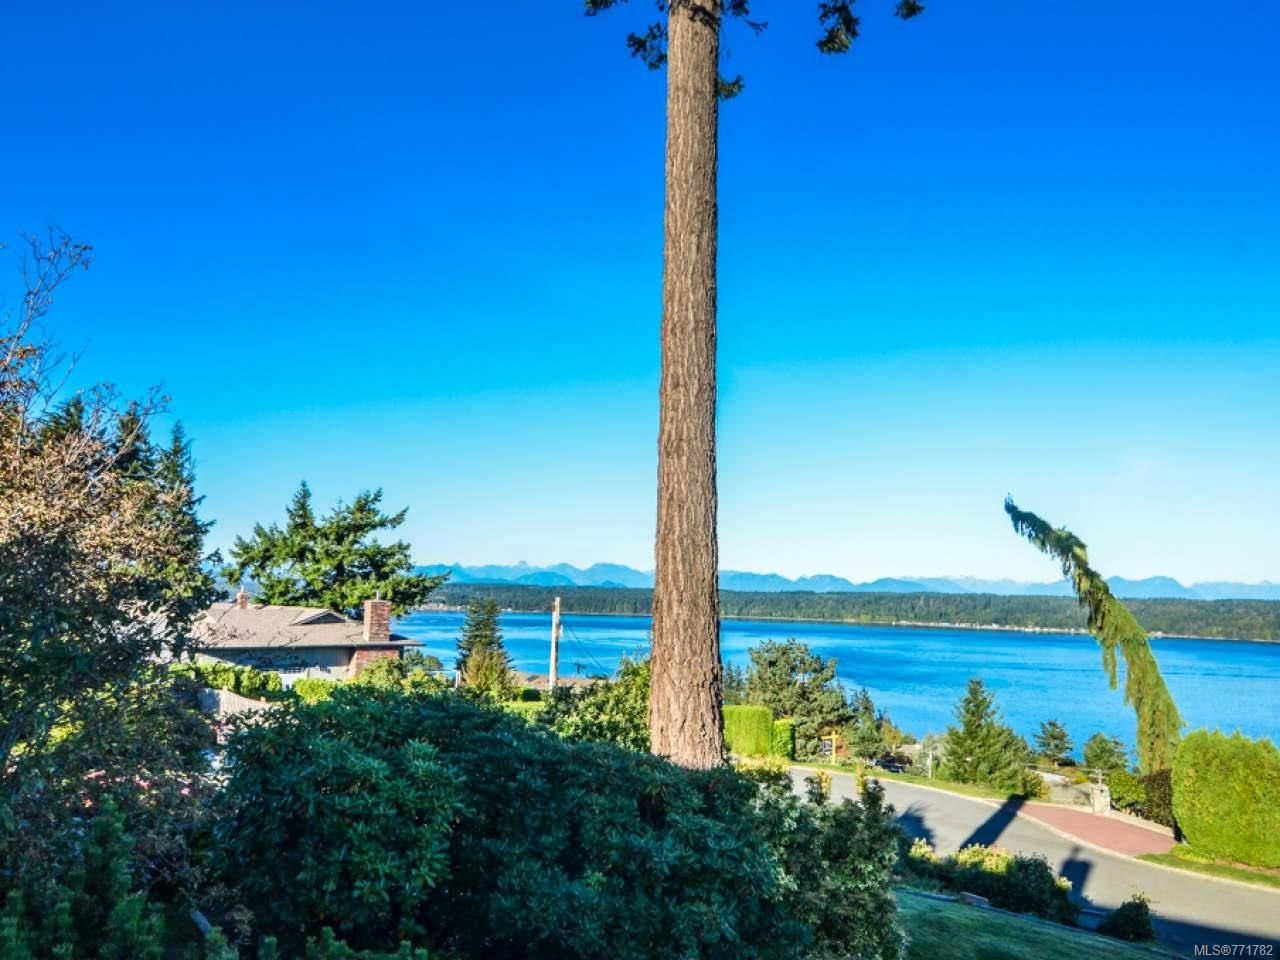 Photo 7: Photos: 451 S McLean St in CAMPBELL RIVER: CR Campbell River Central House for sale (Campbell River)  : MLS®# 771782